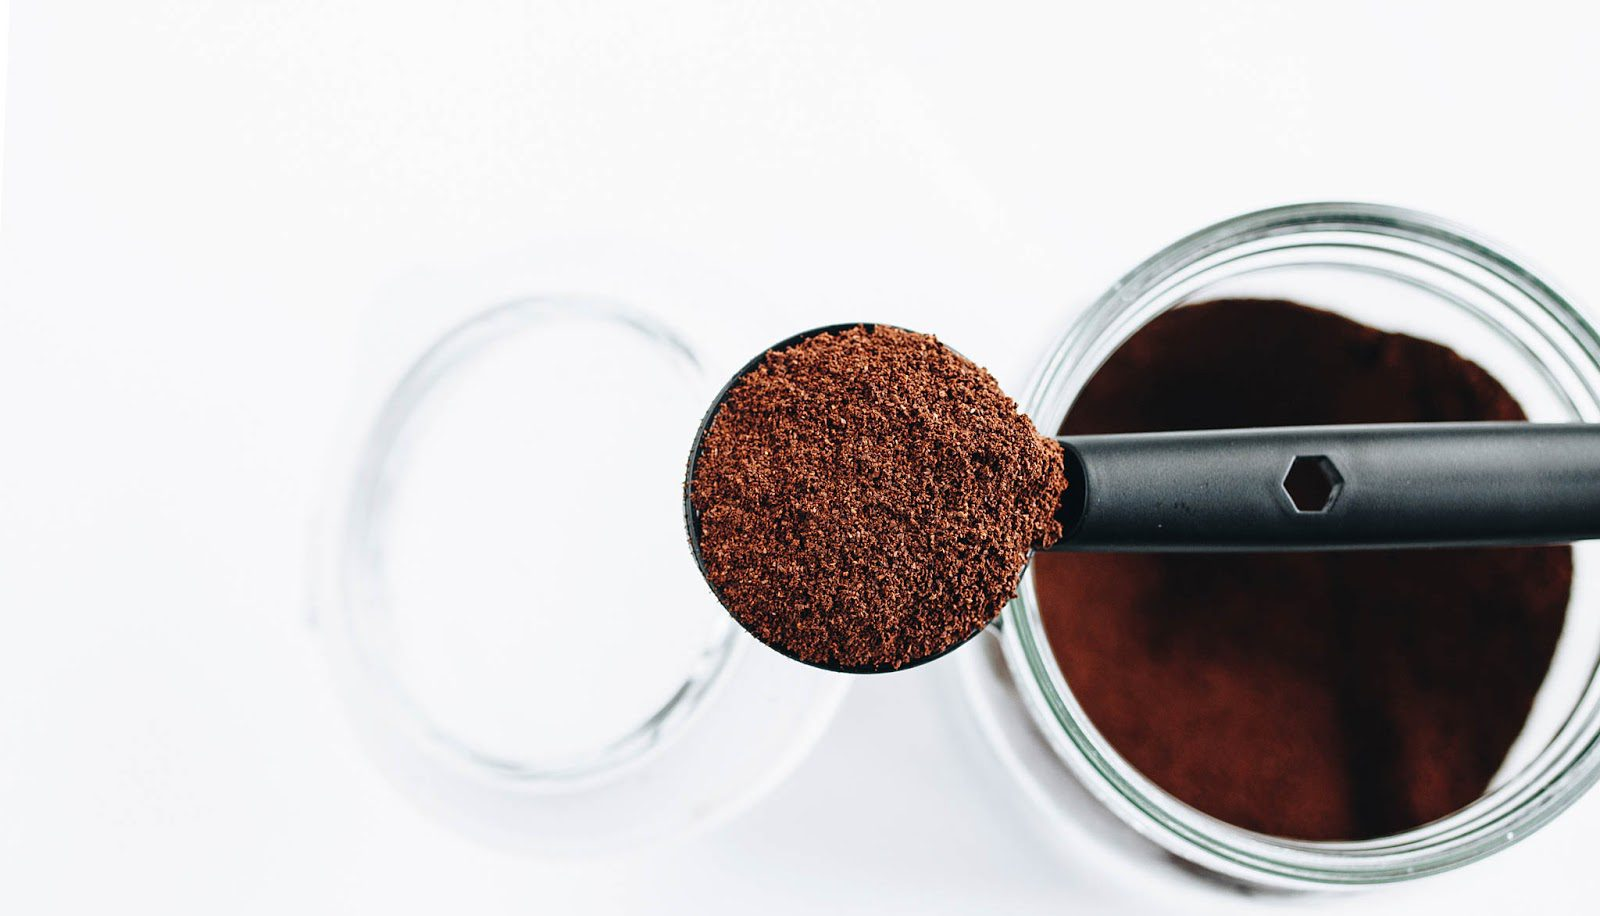 Black measuring spoon with grounded coffee above a glass jar